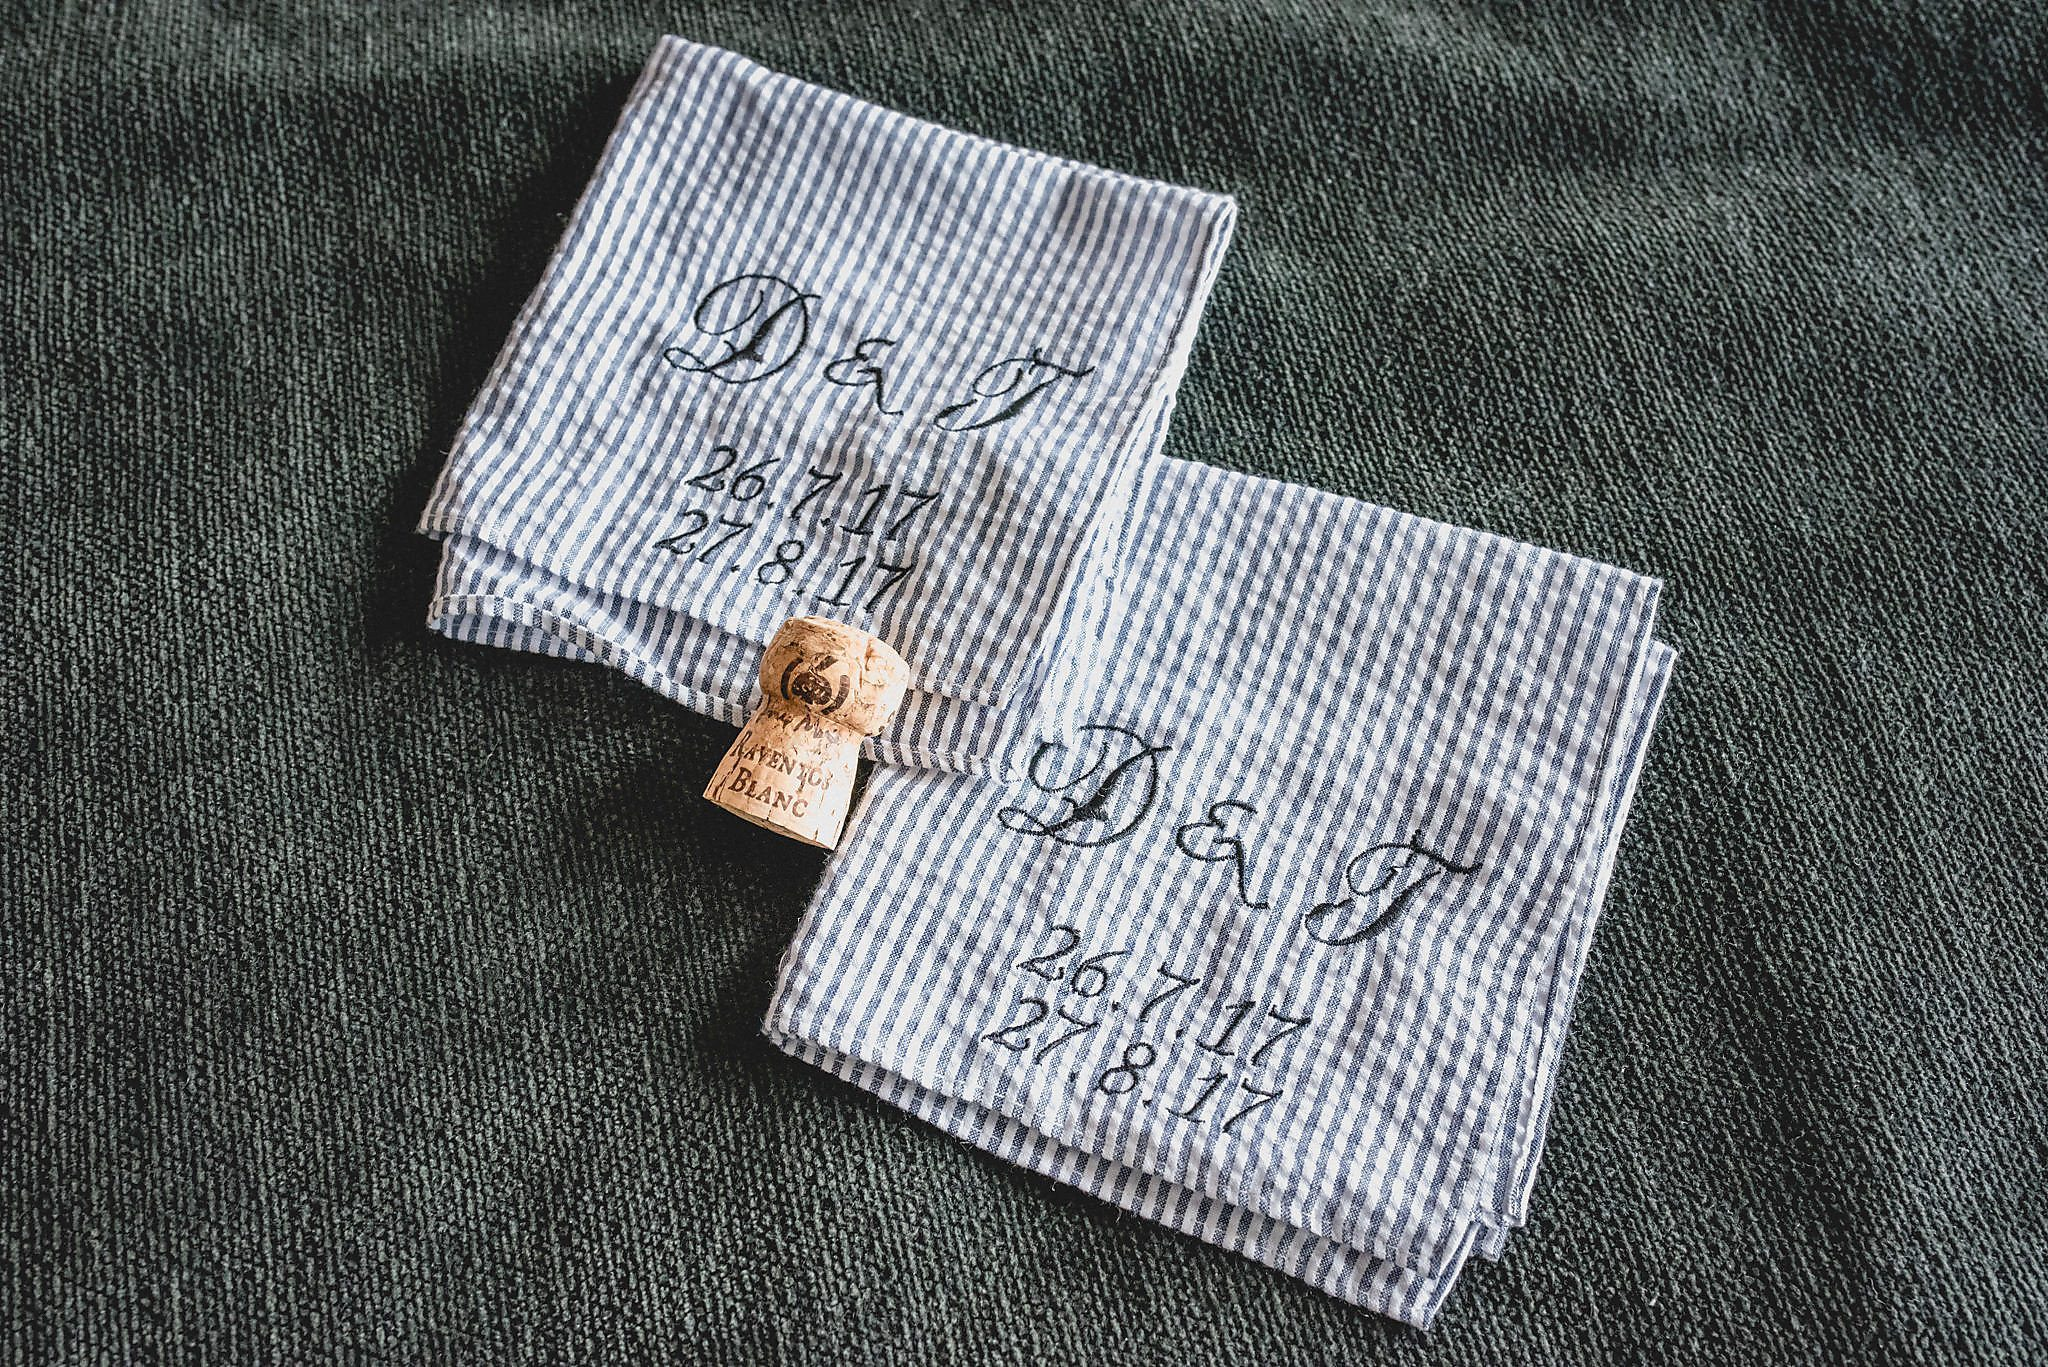 Monogrammed pocket squares showing a Copenhagen elopement date